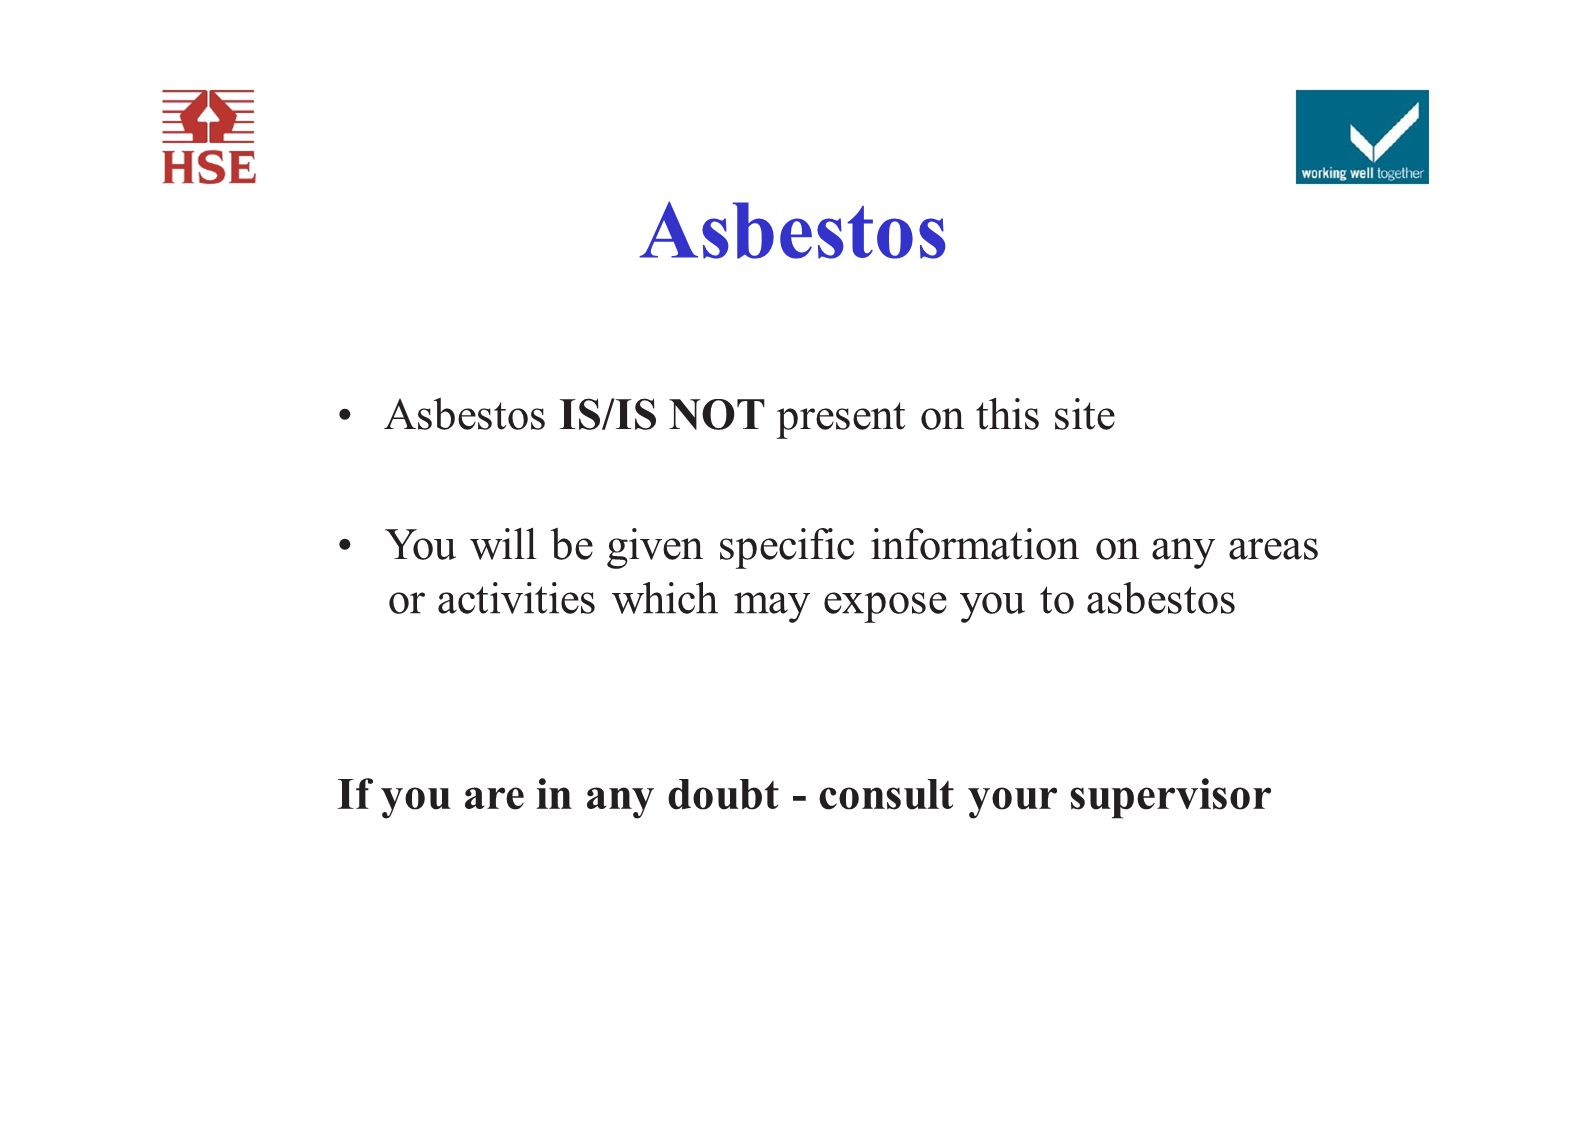 Asbestos Asbestos IS/IS NOT present on this site You will be given specific information on any areas or activities which may expose you to asbestos If